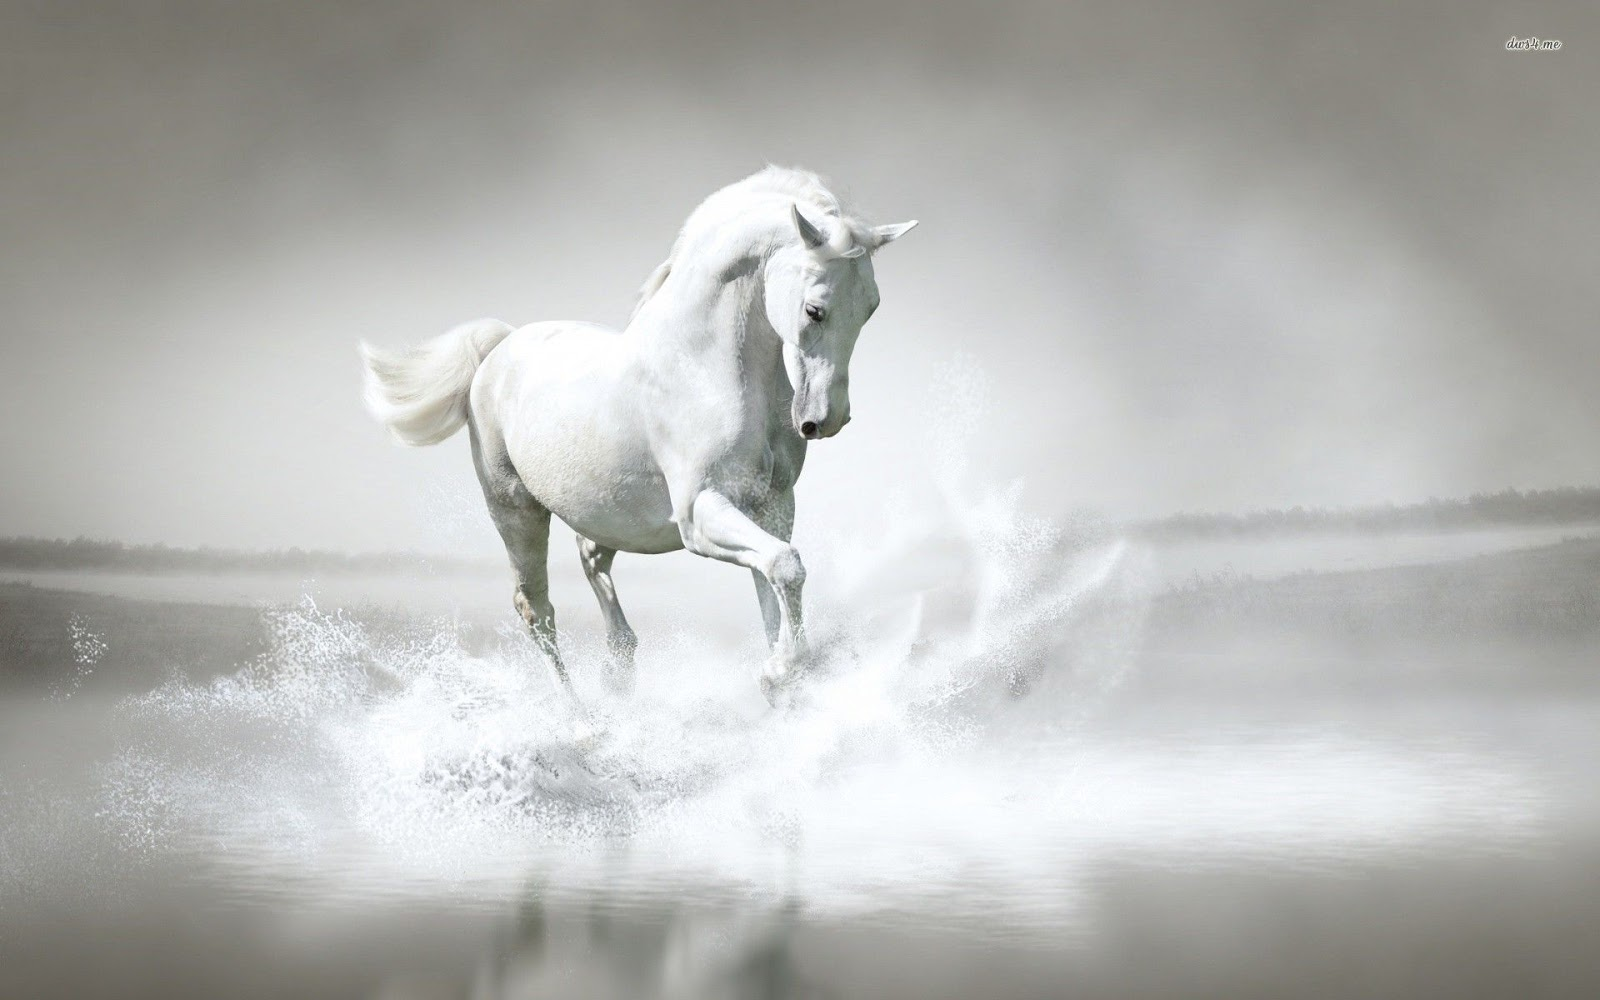 Hd Wallpaper White Horse Hd Wallpaper